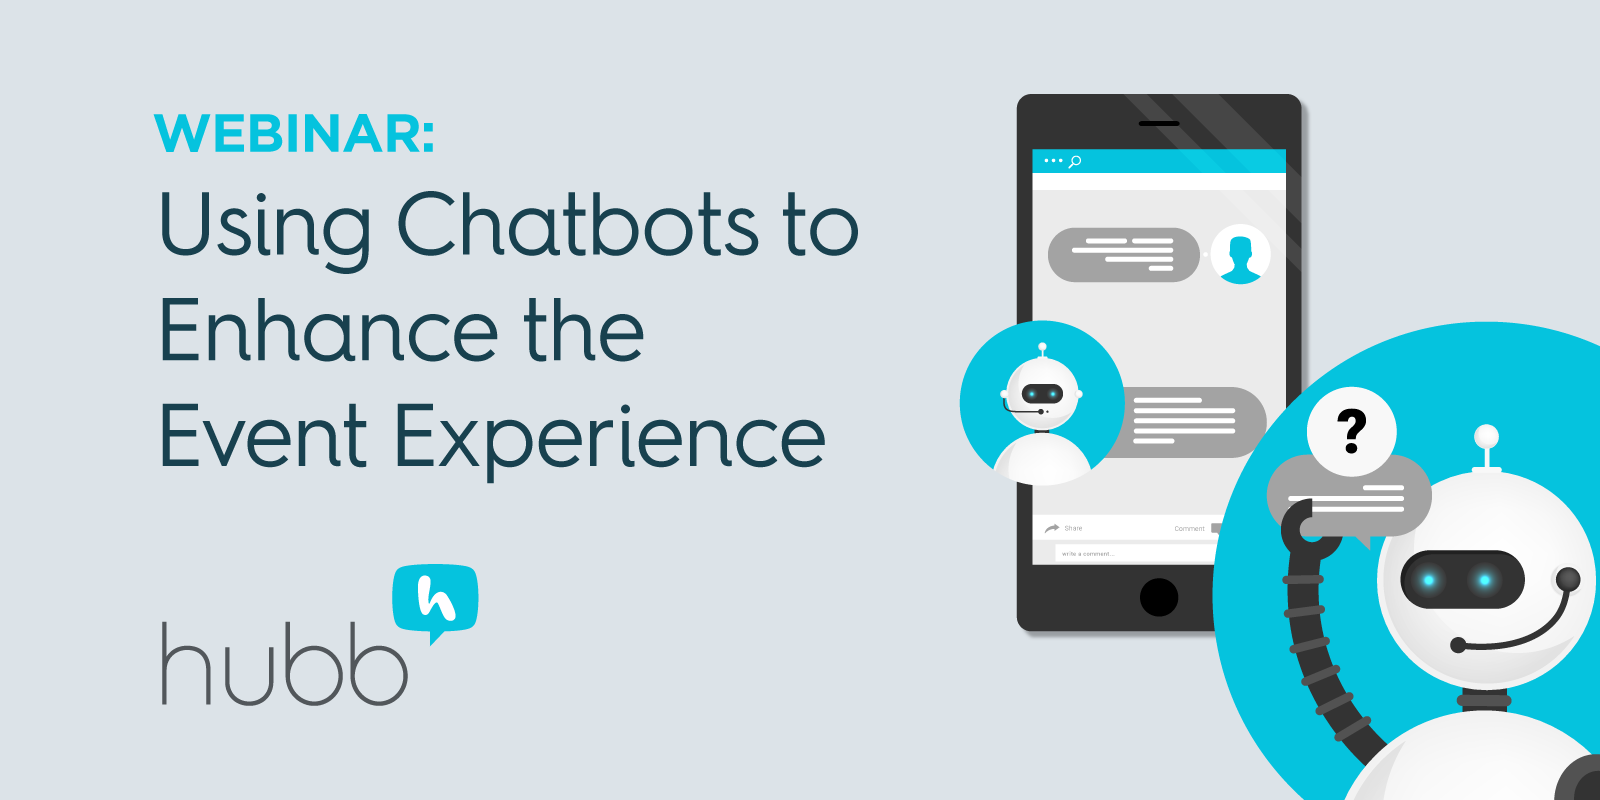 [Webinar] Using chatbots to enhance the event experience